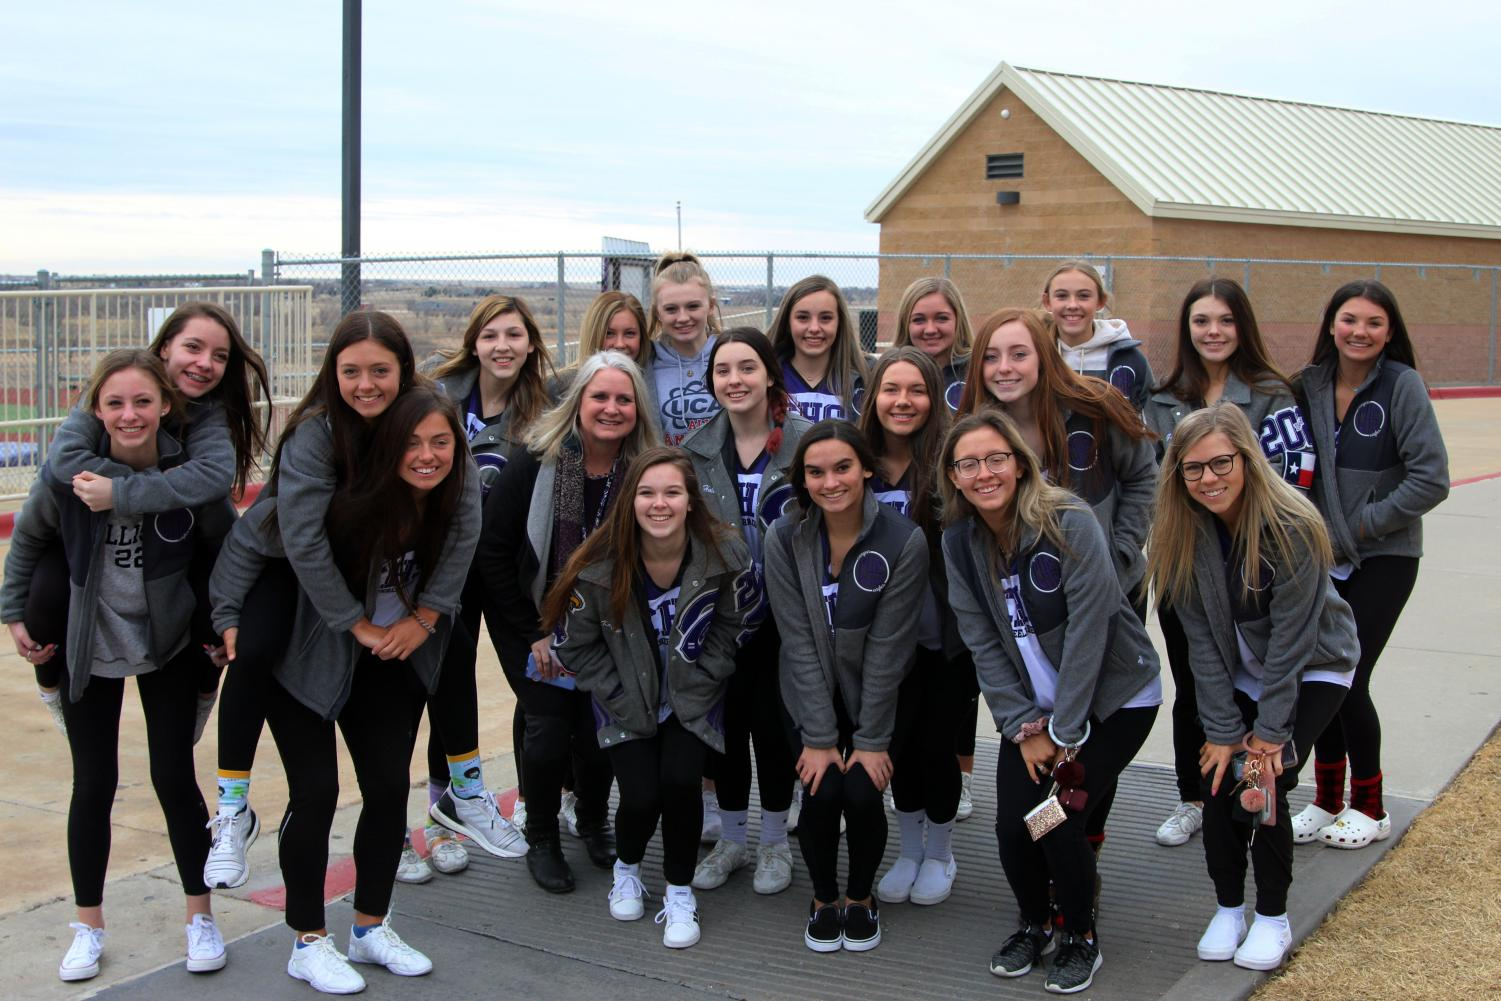 Principal Jennifer Boren accompanies the varsity cheerleaders before the team leaves for state competition following a school-wide send-off.